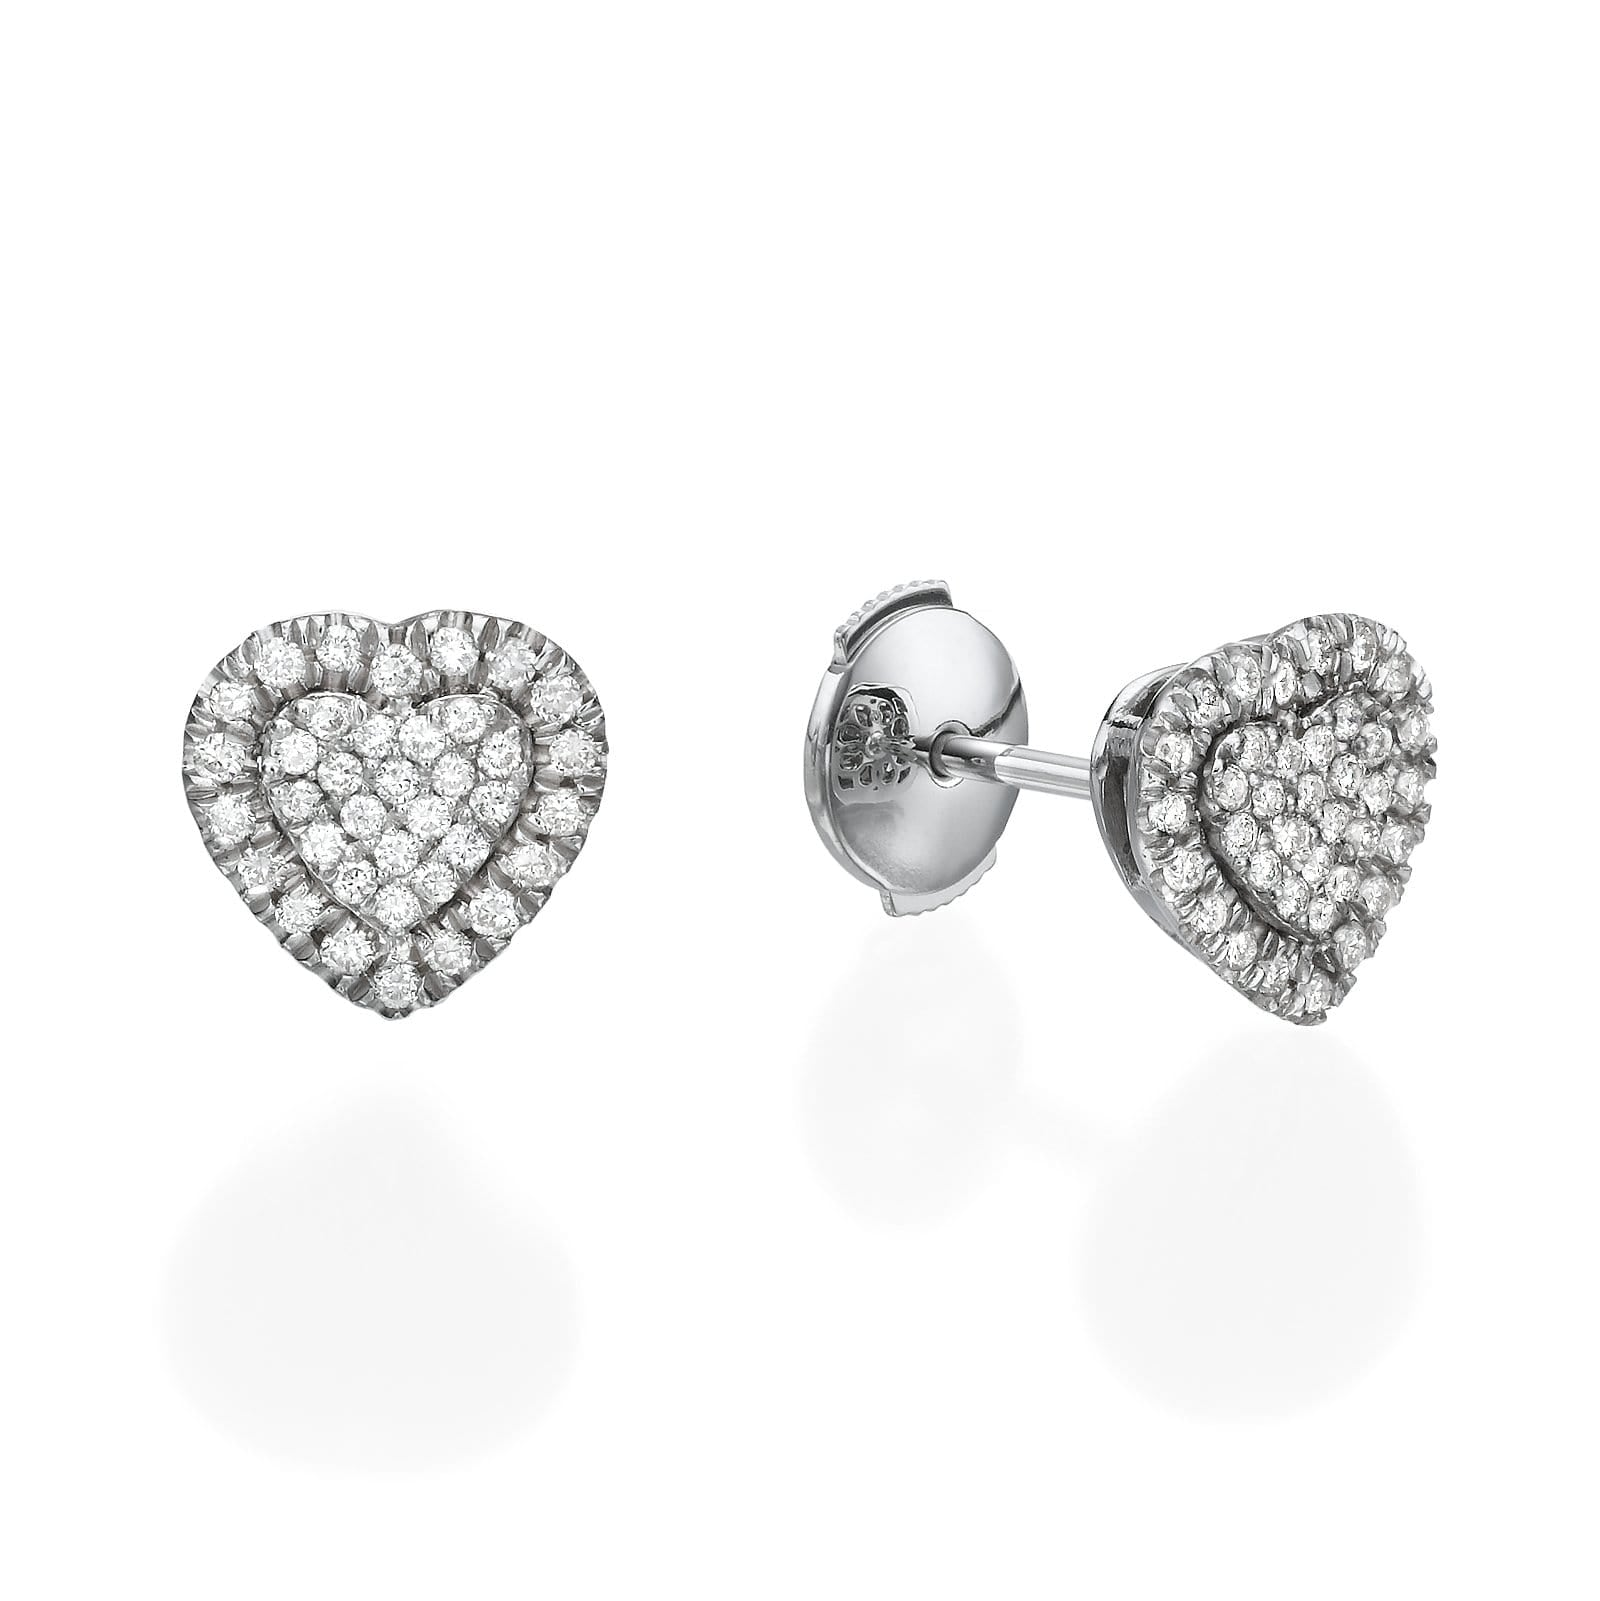 Heart Shaped Diamond Cluster Earrings